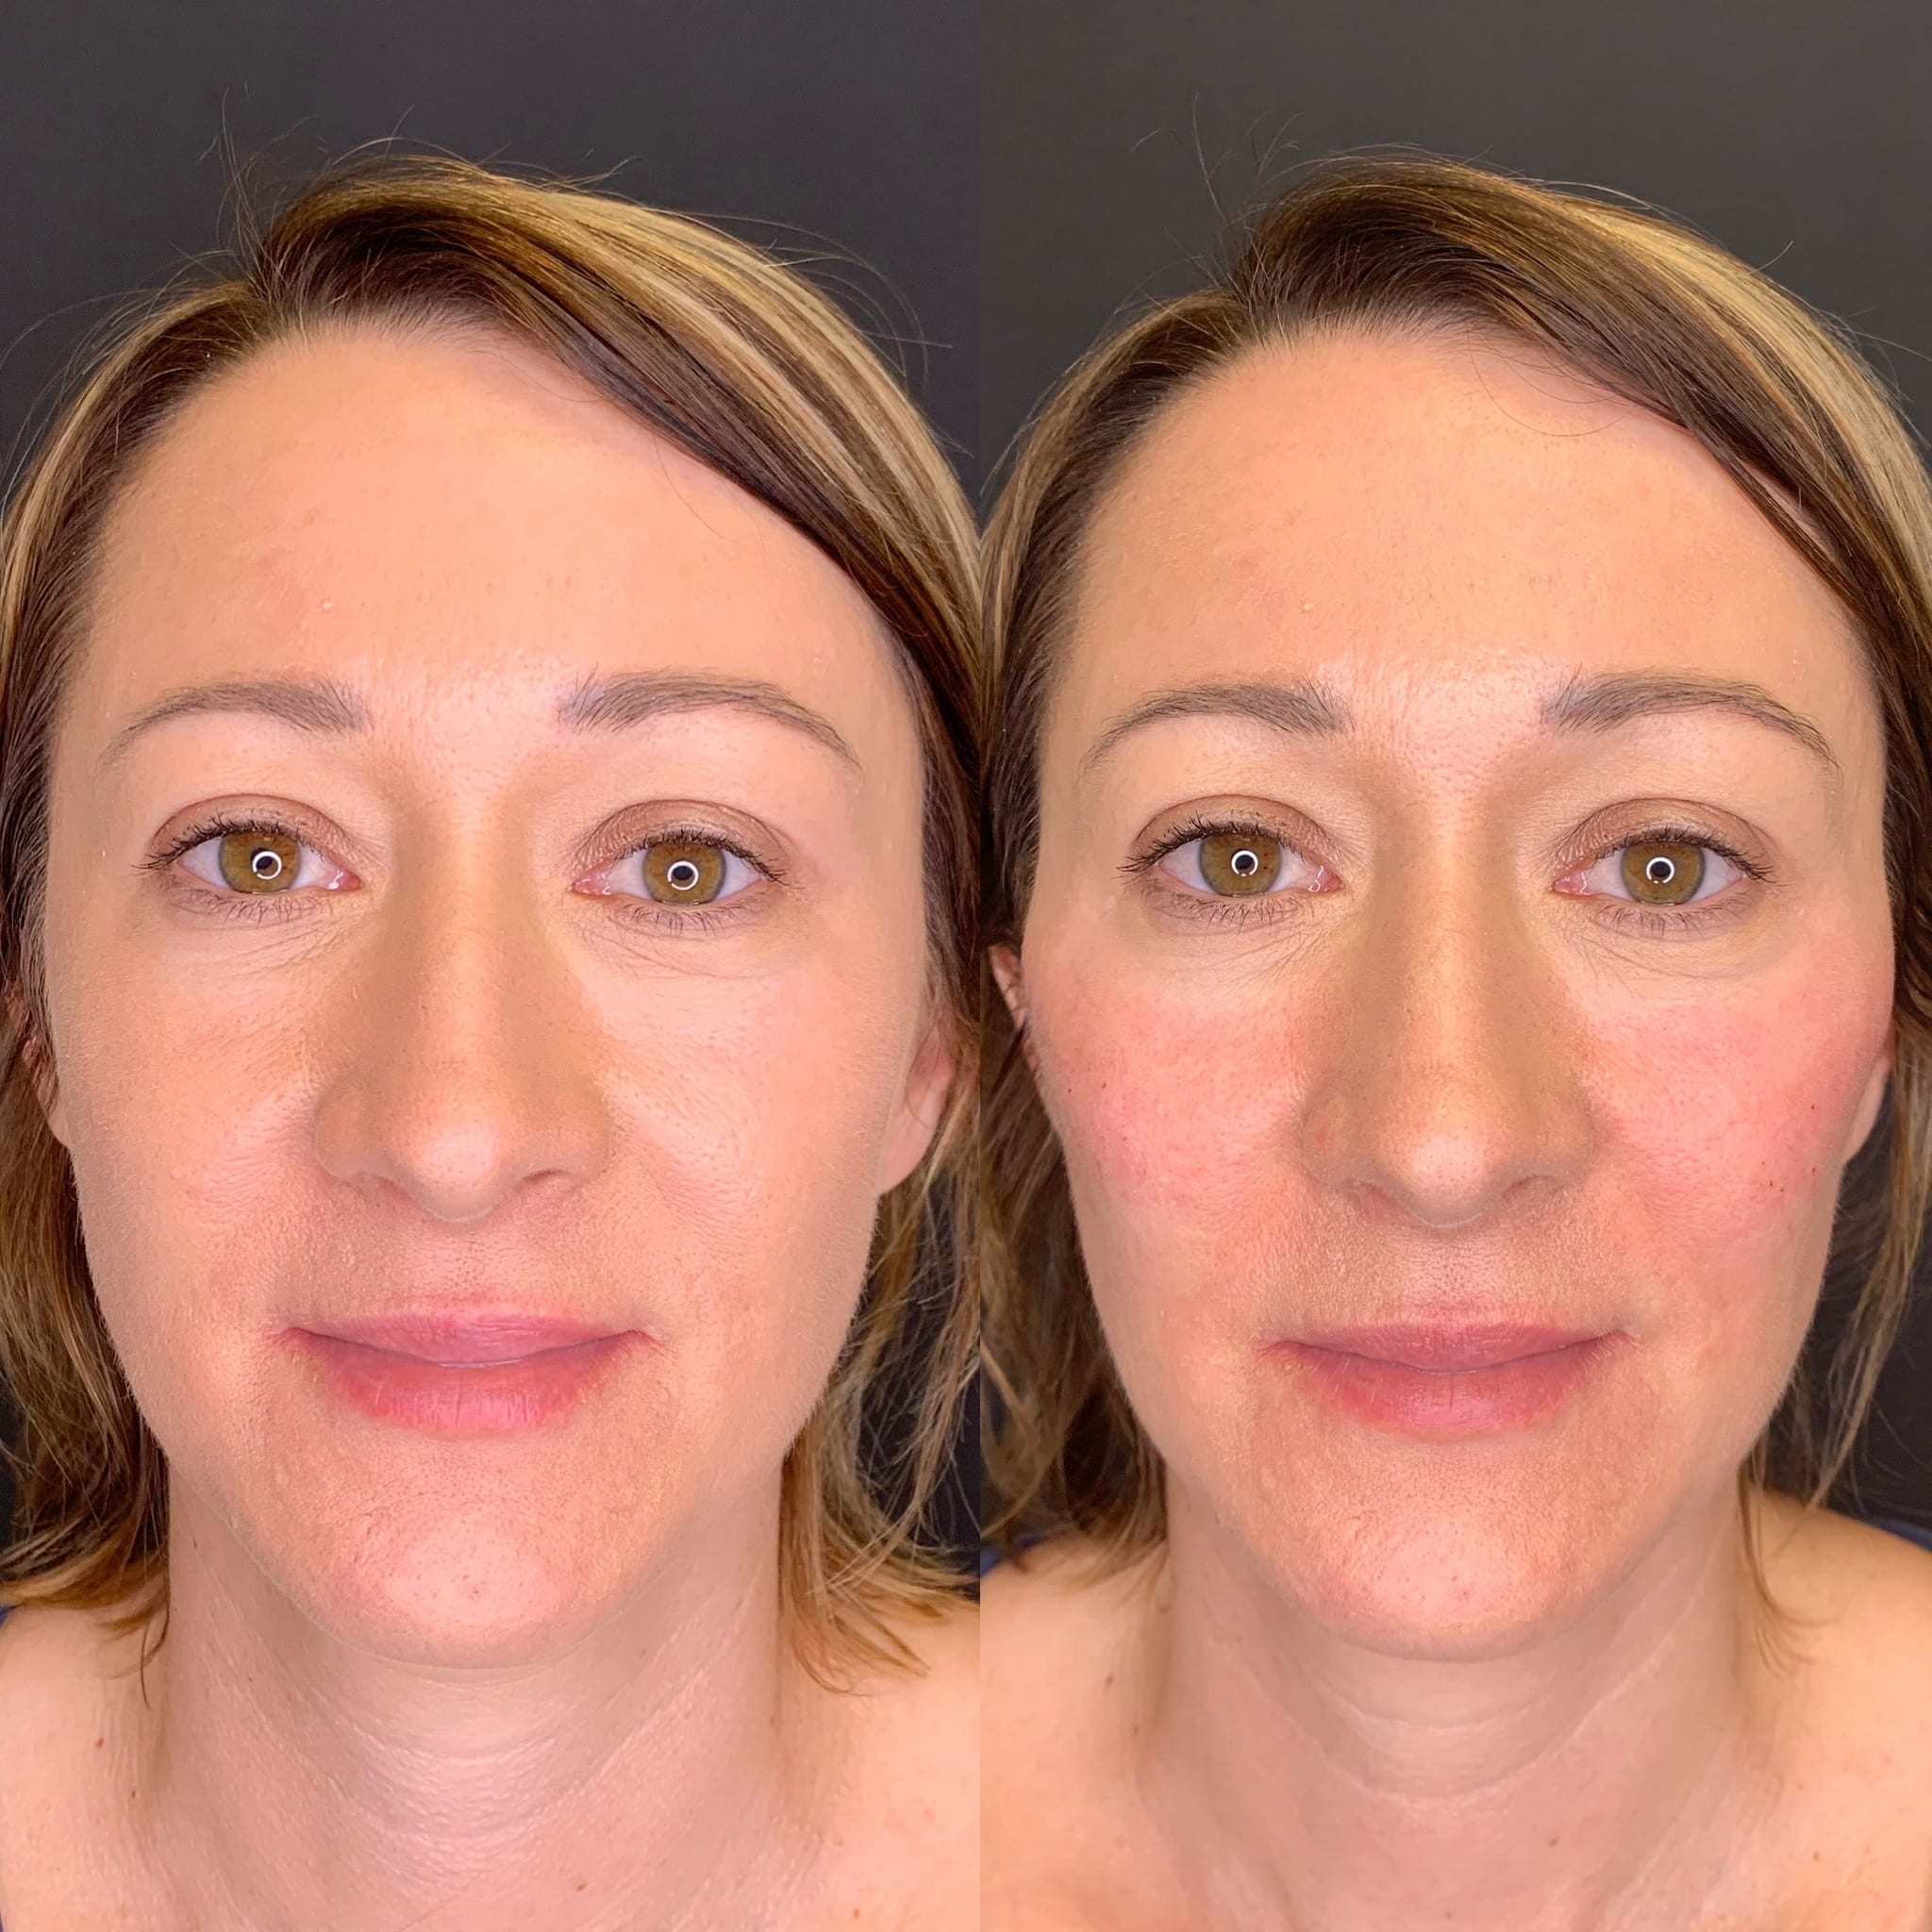 38 y/o European F immediately after injecting 2 syringes of voluma to her cheek bones for mid-face lift, contour and definition.